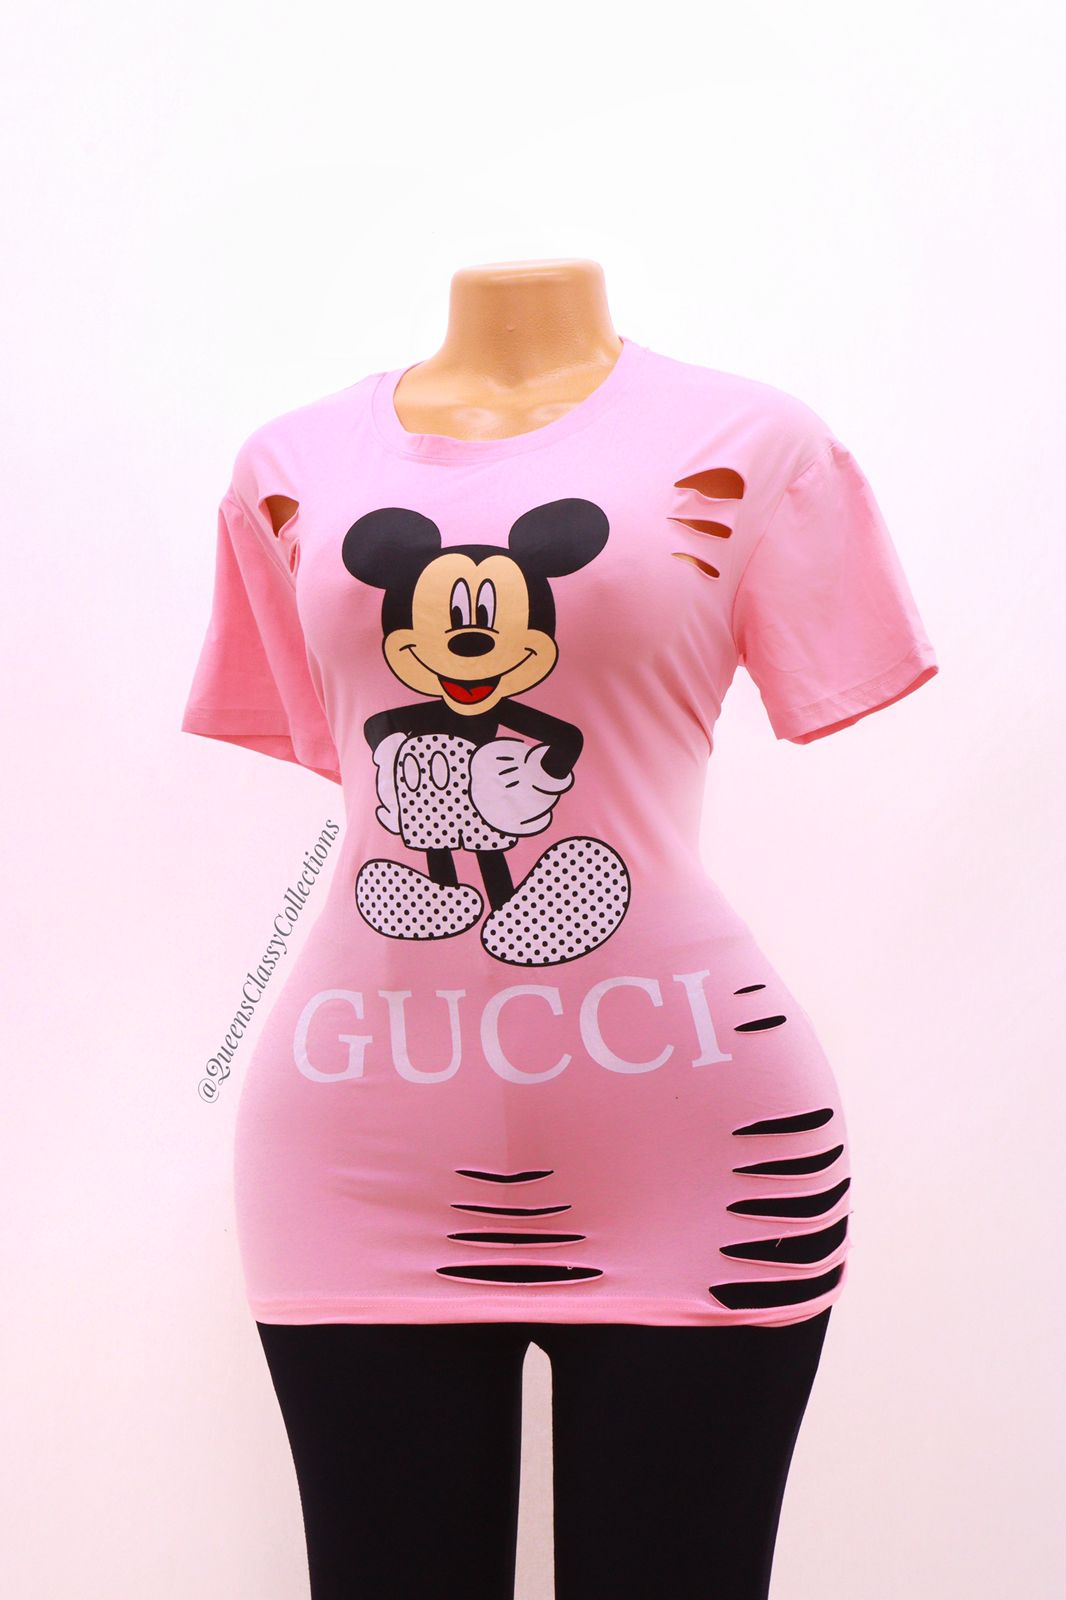 Gucci ripped top